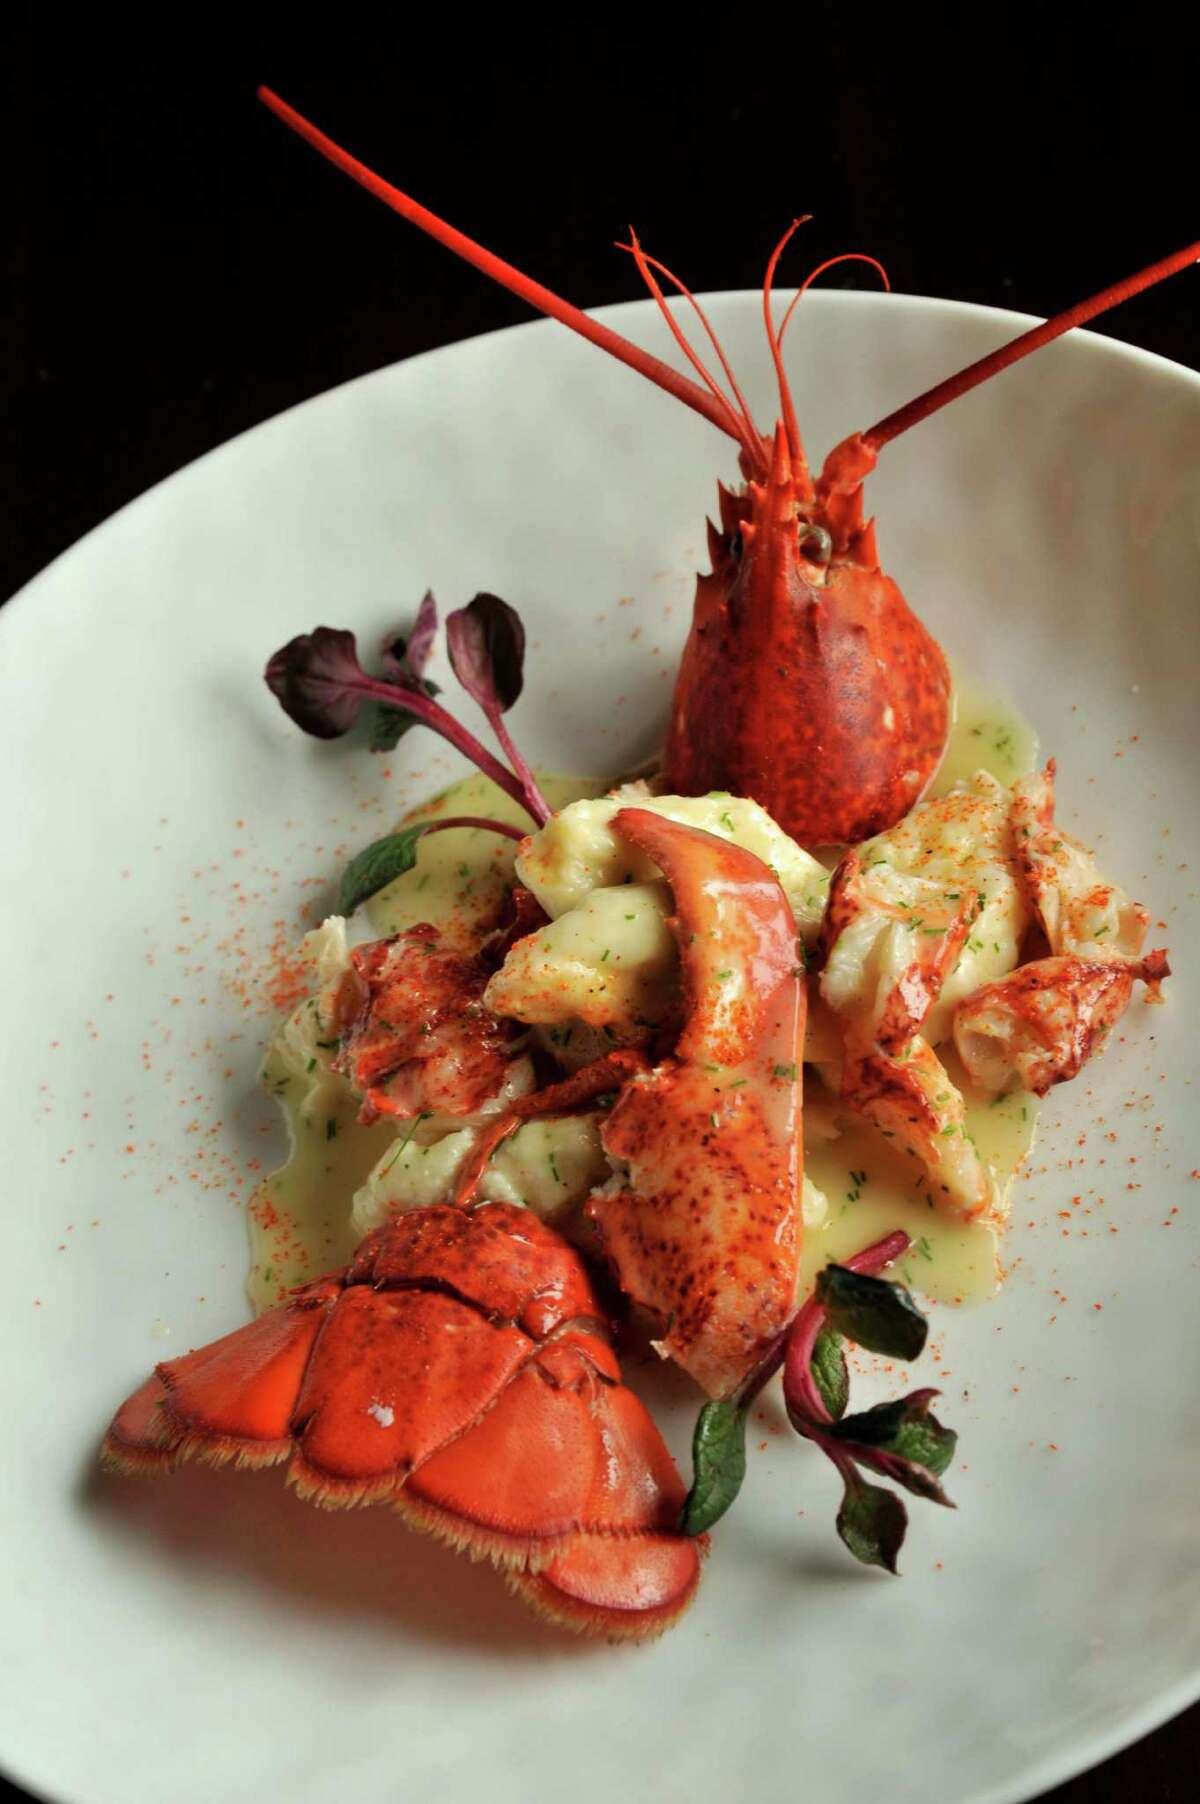 Butter poached lobster with sheep's milk ricotta gnocchi from Restaurant R'evolution.